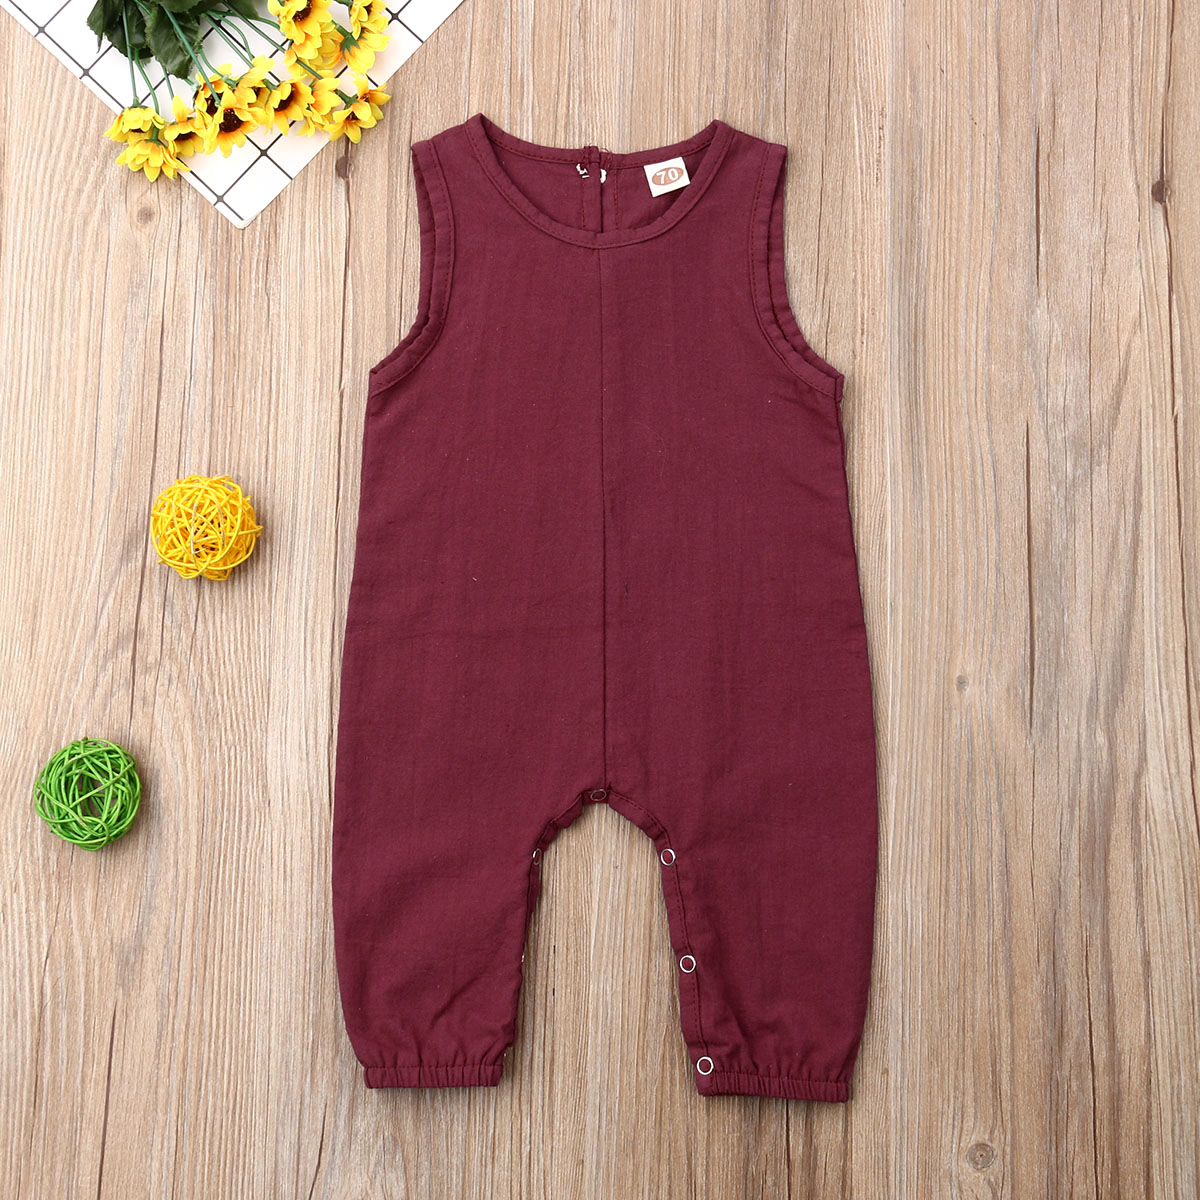 Kids Baby Boy Girls Infant Sleeveless Romper Summer One-piece Newborn Toddlers Children Cotton Jumpsuit Clothes Outfit